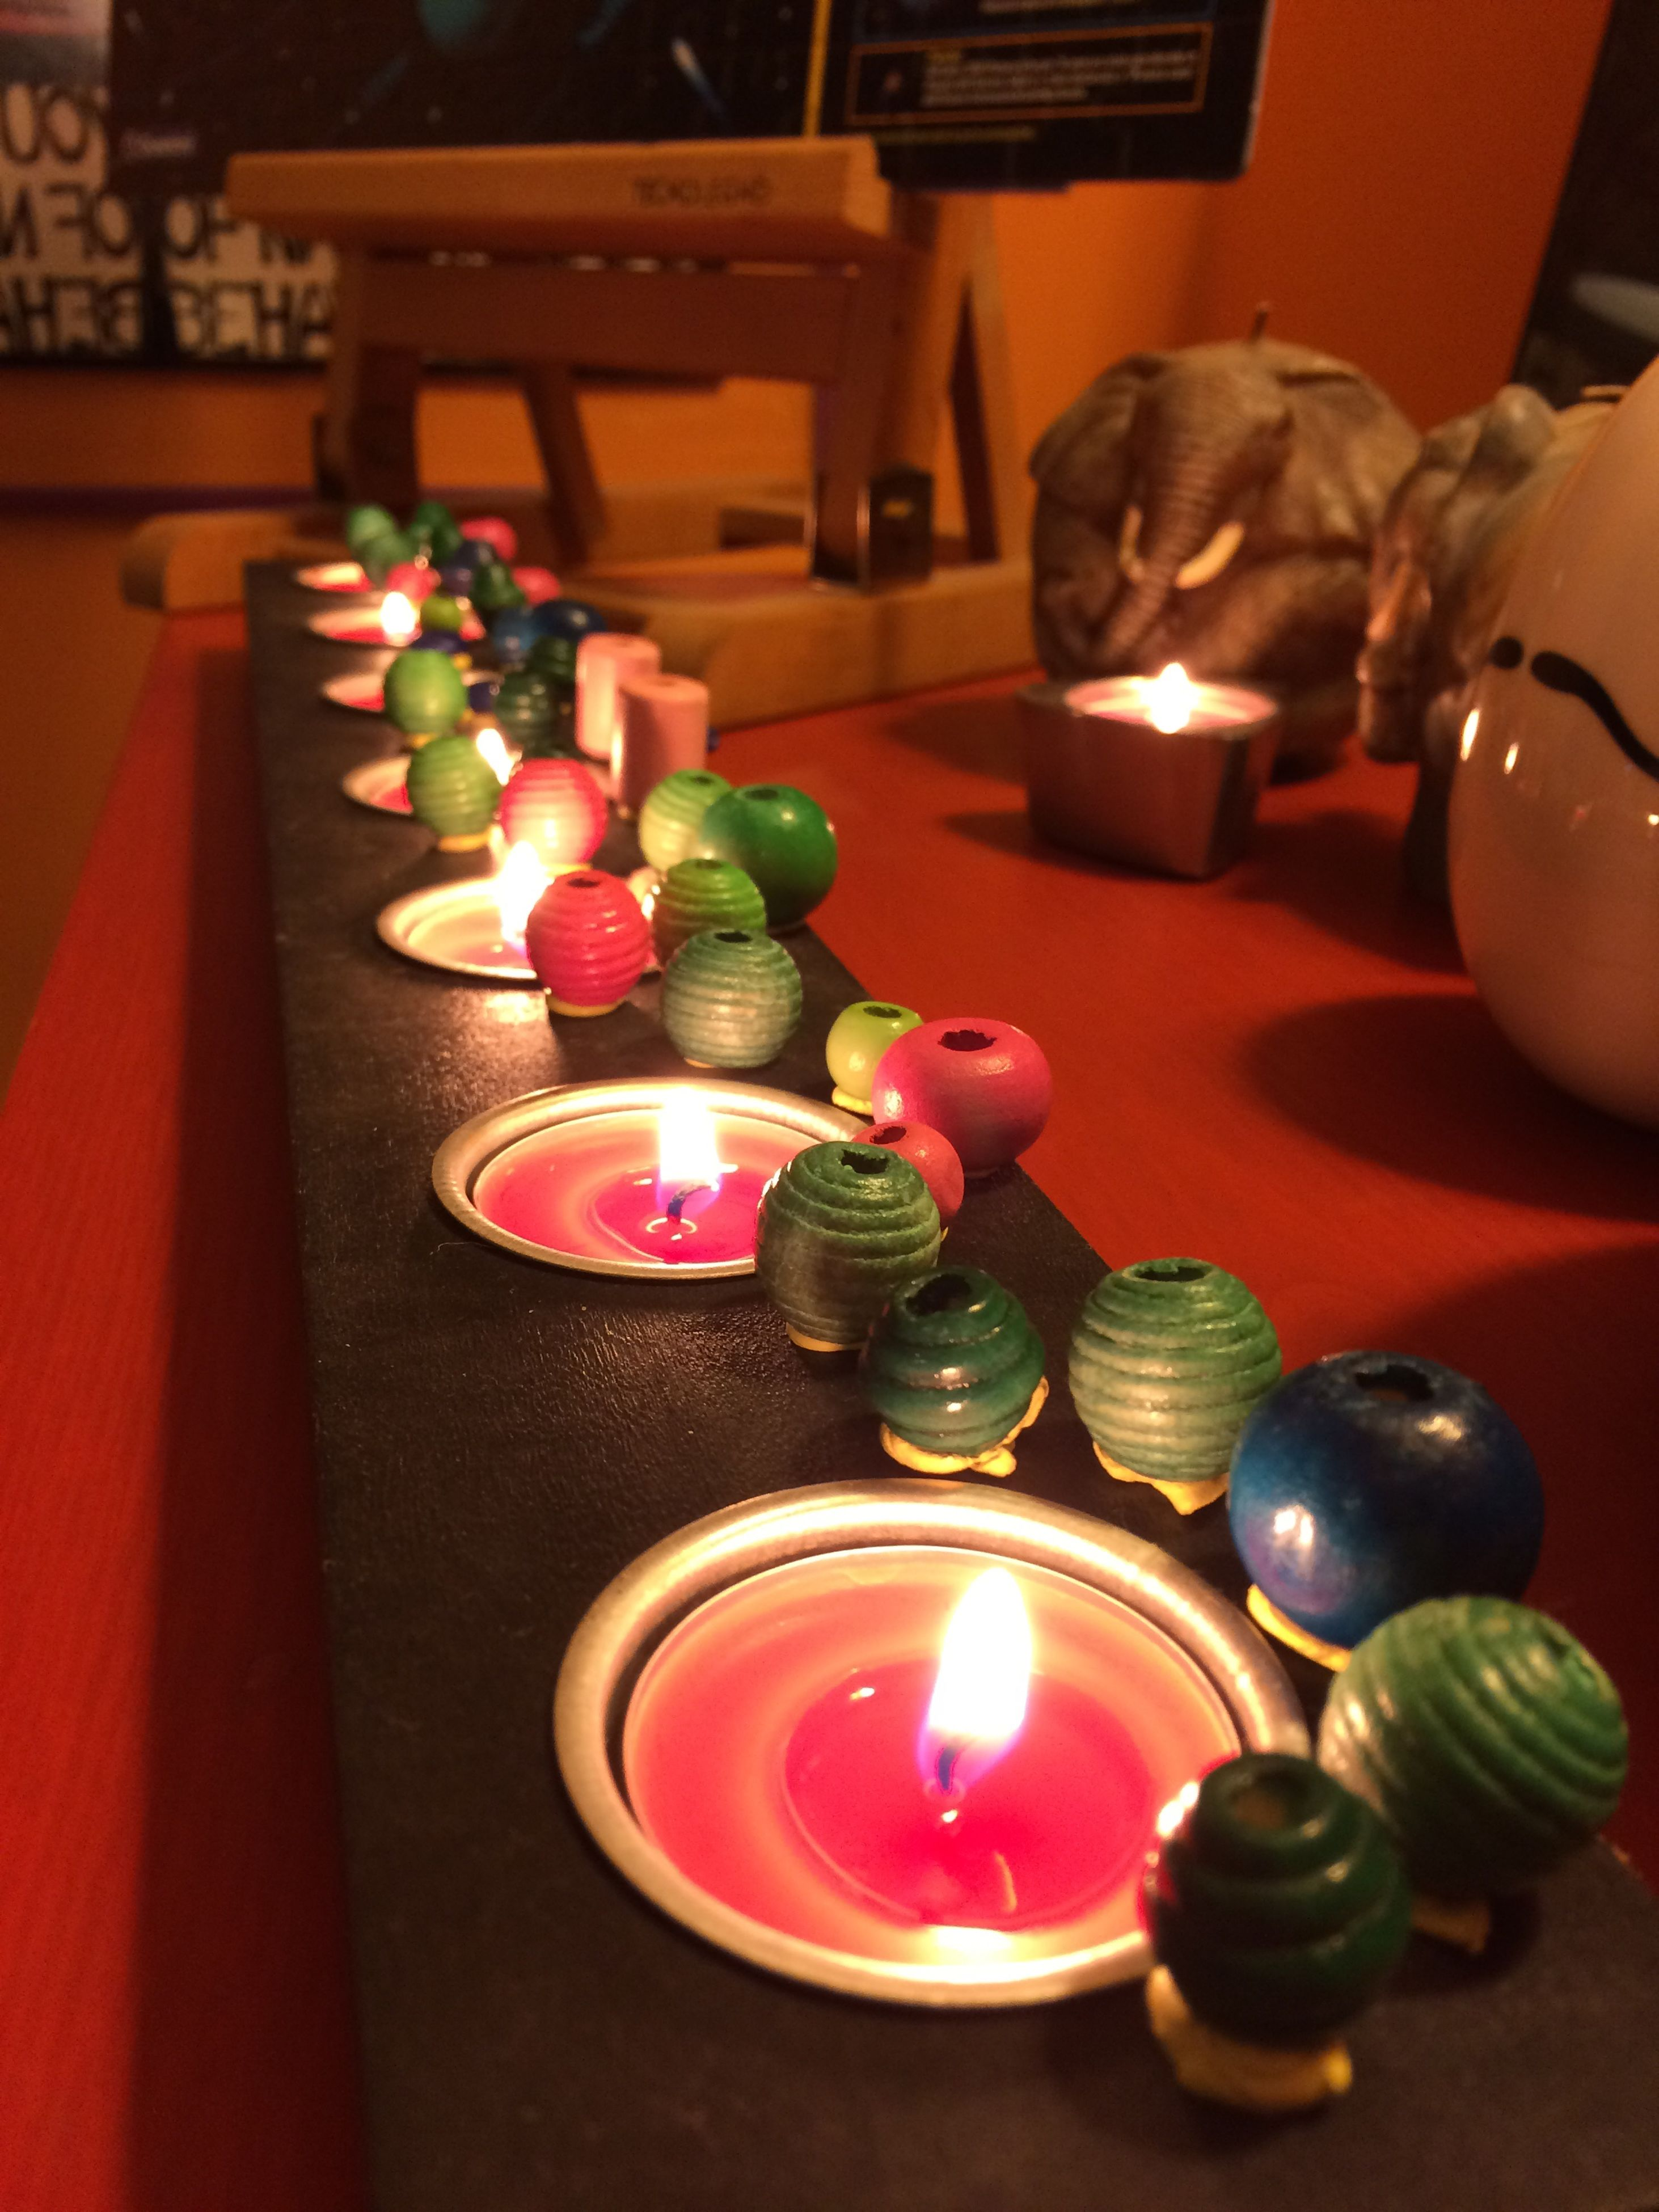 flame, candle, burning, indoors, tea light, table, lit, illuminated, no people, birthday candles